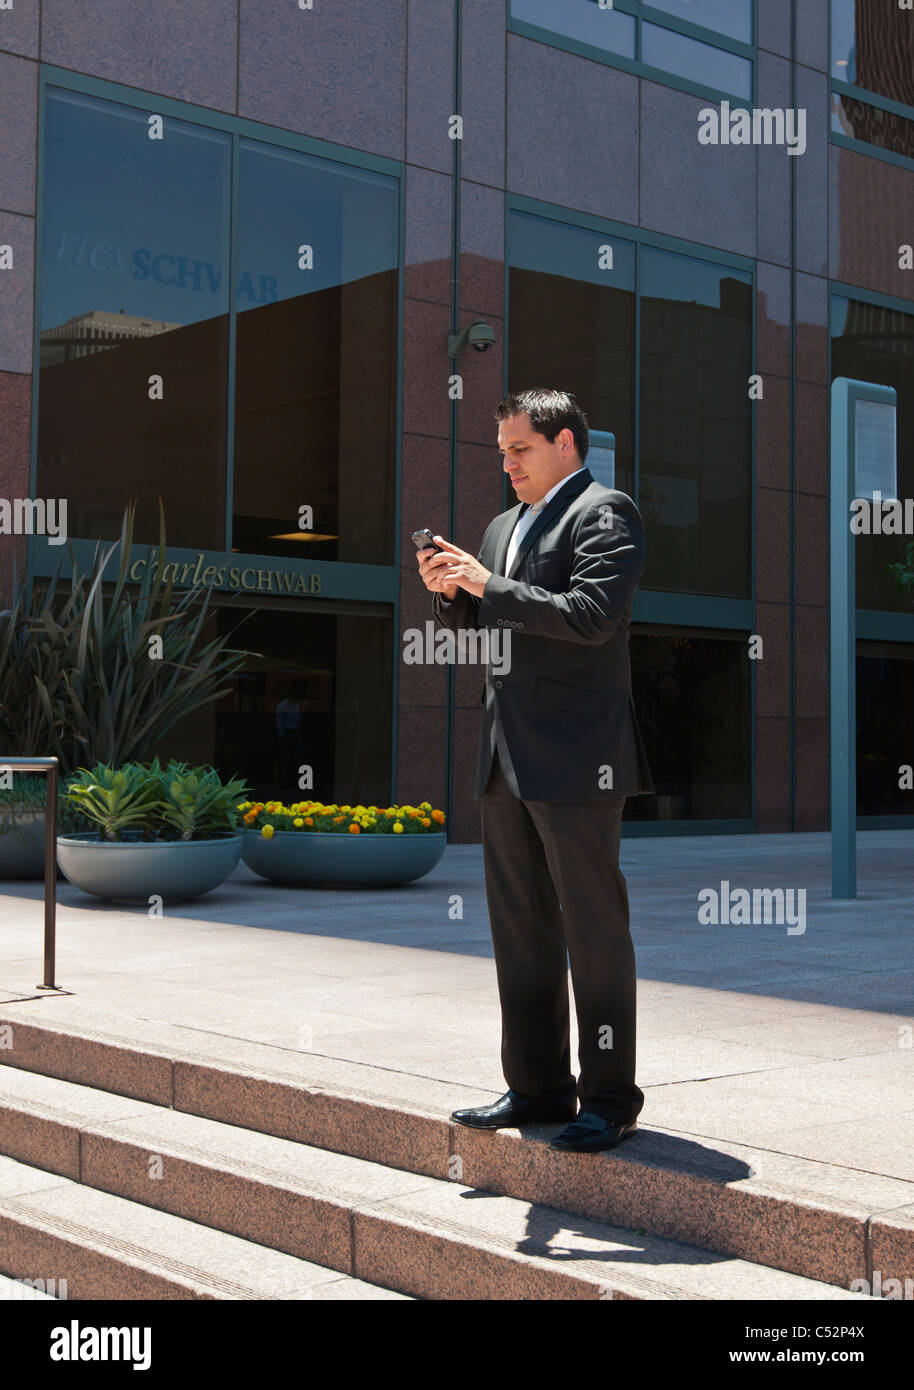 Businesspeople in Downtown. - Stock Image